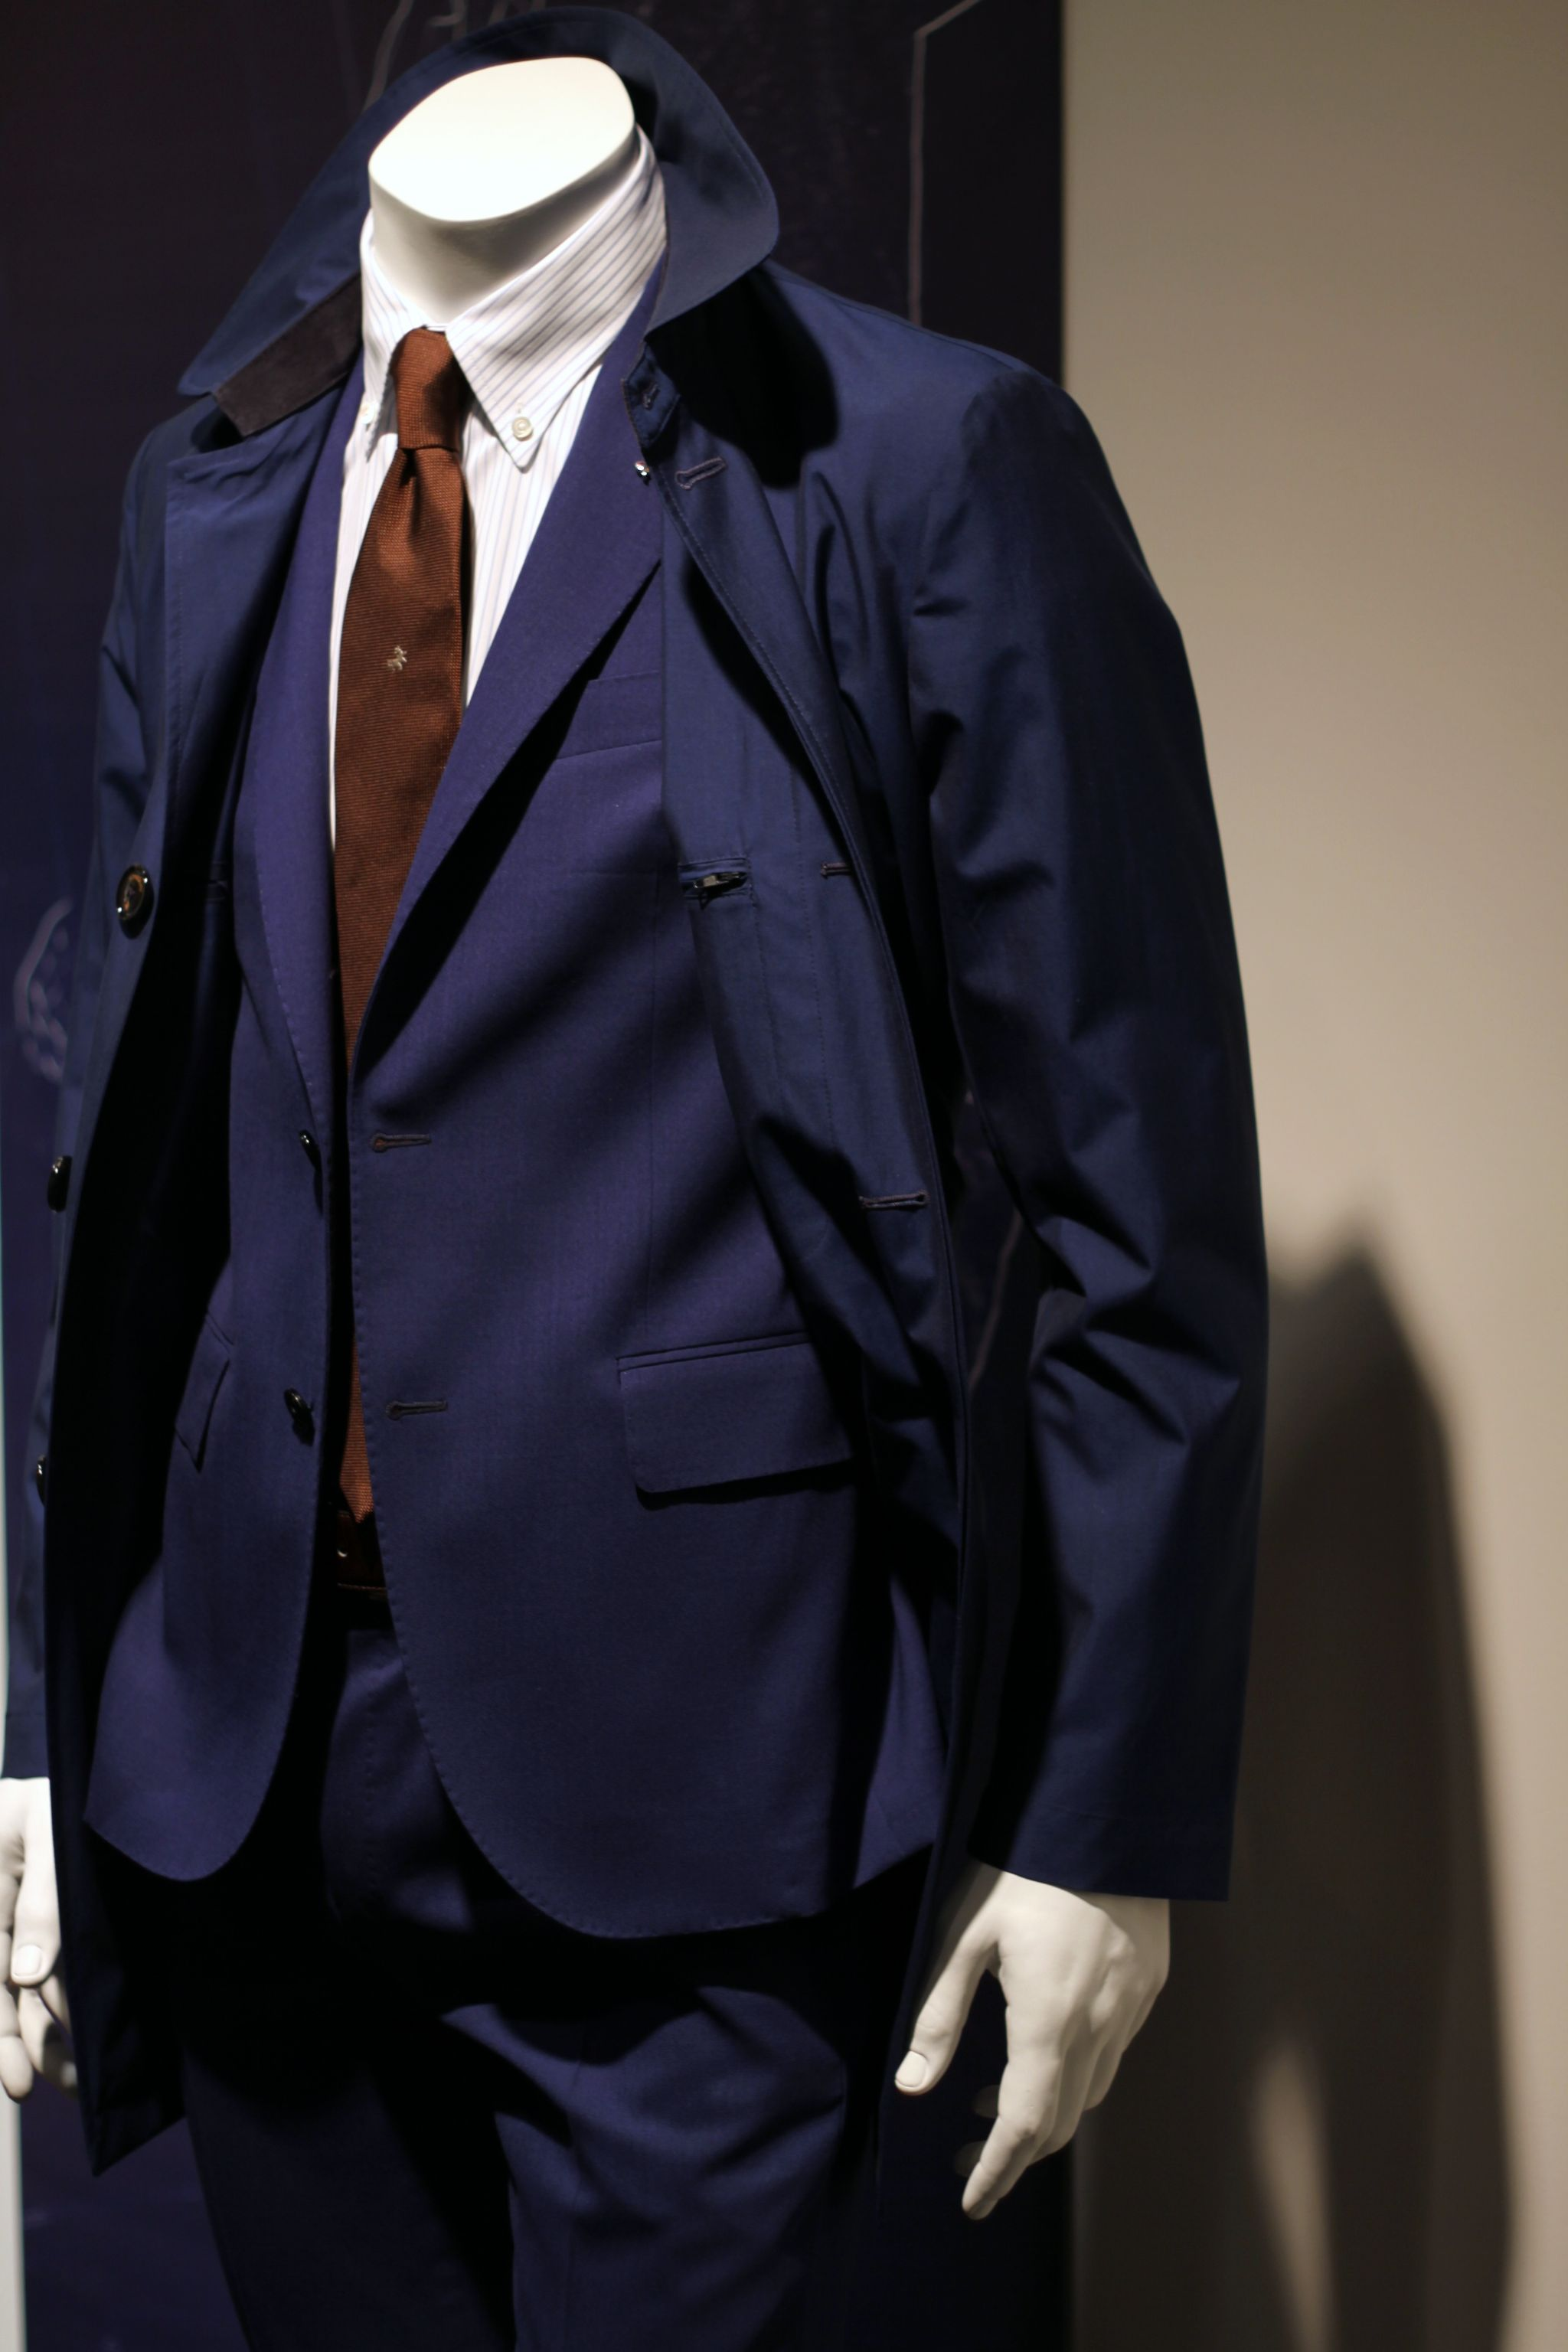 Pitti Uomo 90 Tombolini blue suit and overcoat